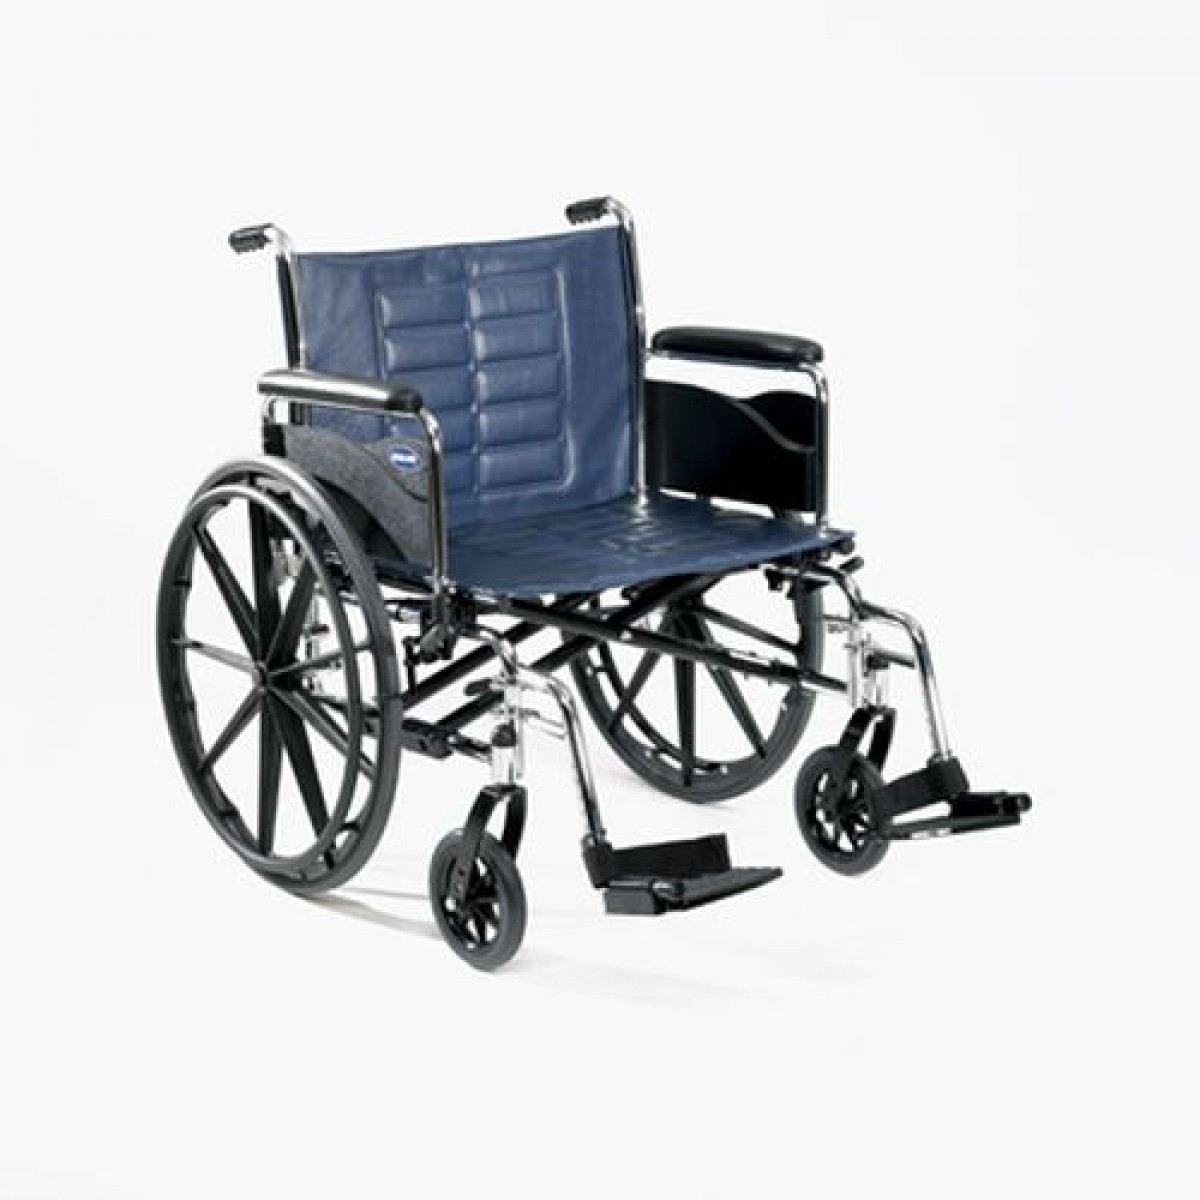 Tracer Iv Heavy Duty Wheelchair On Sale With Unbeatable Prices